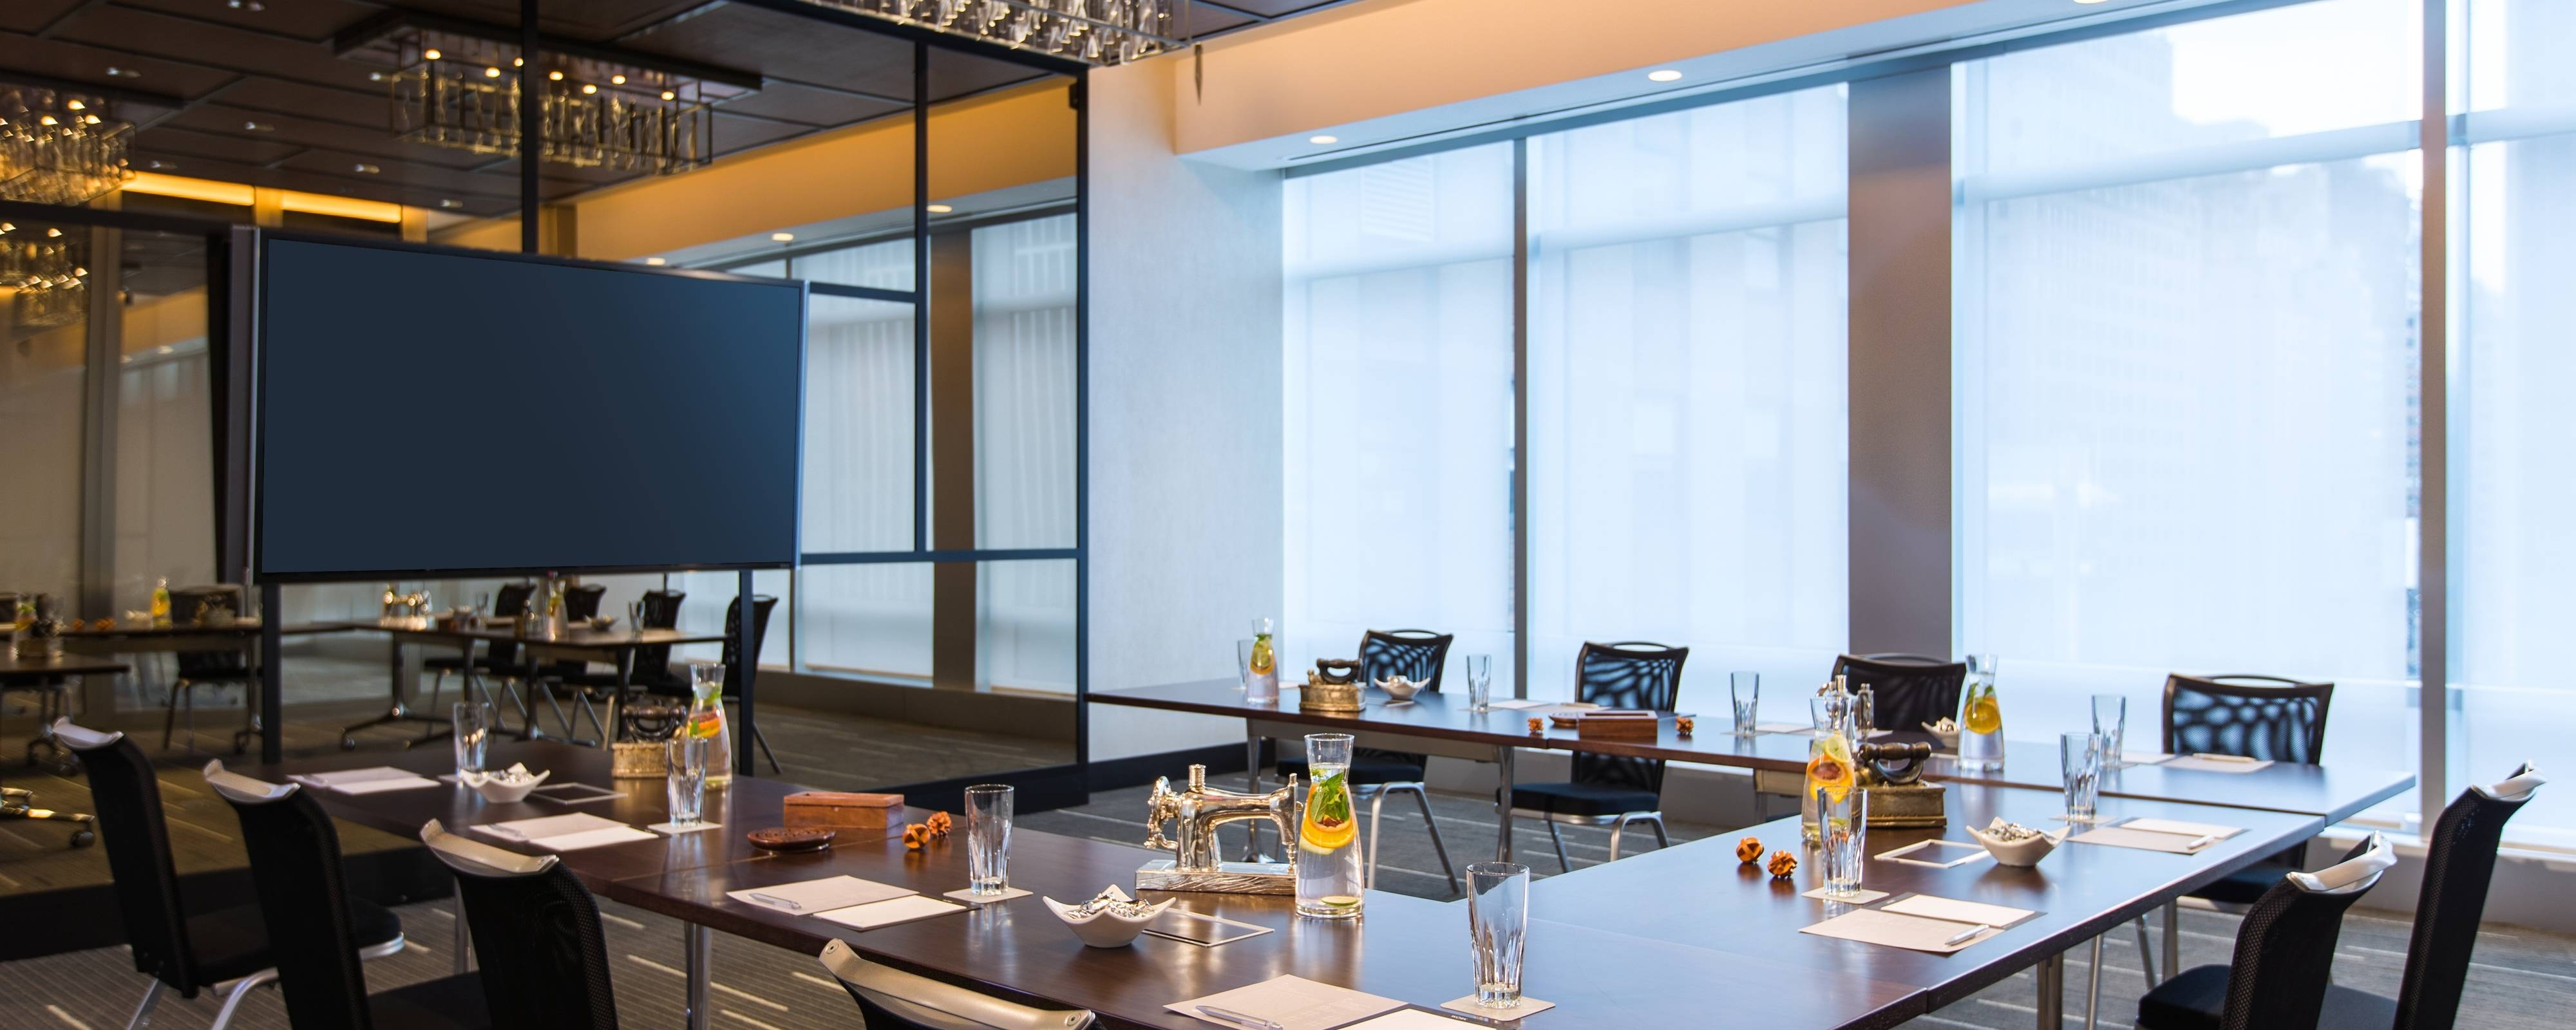 the-top-20-corporate-event-venues-in-new-york-city-8